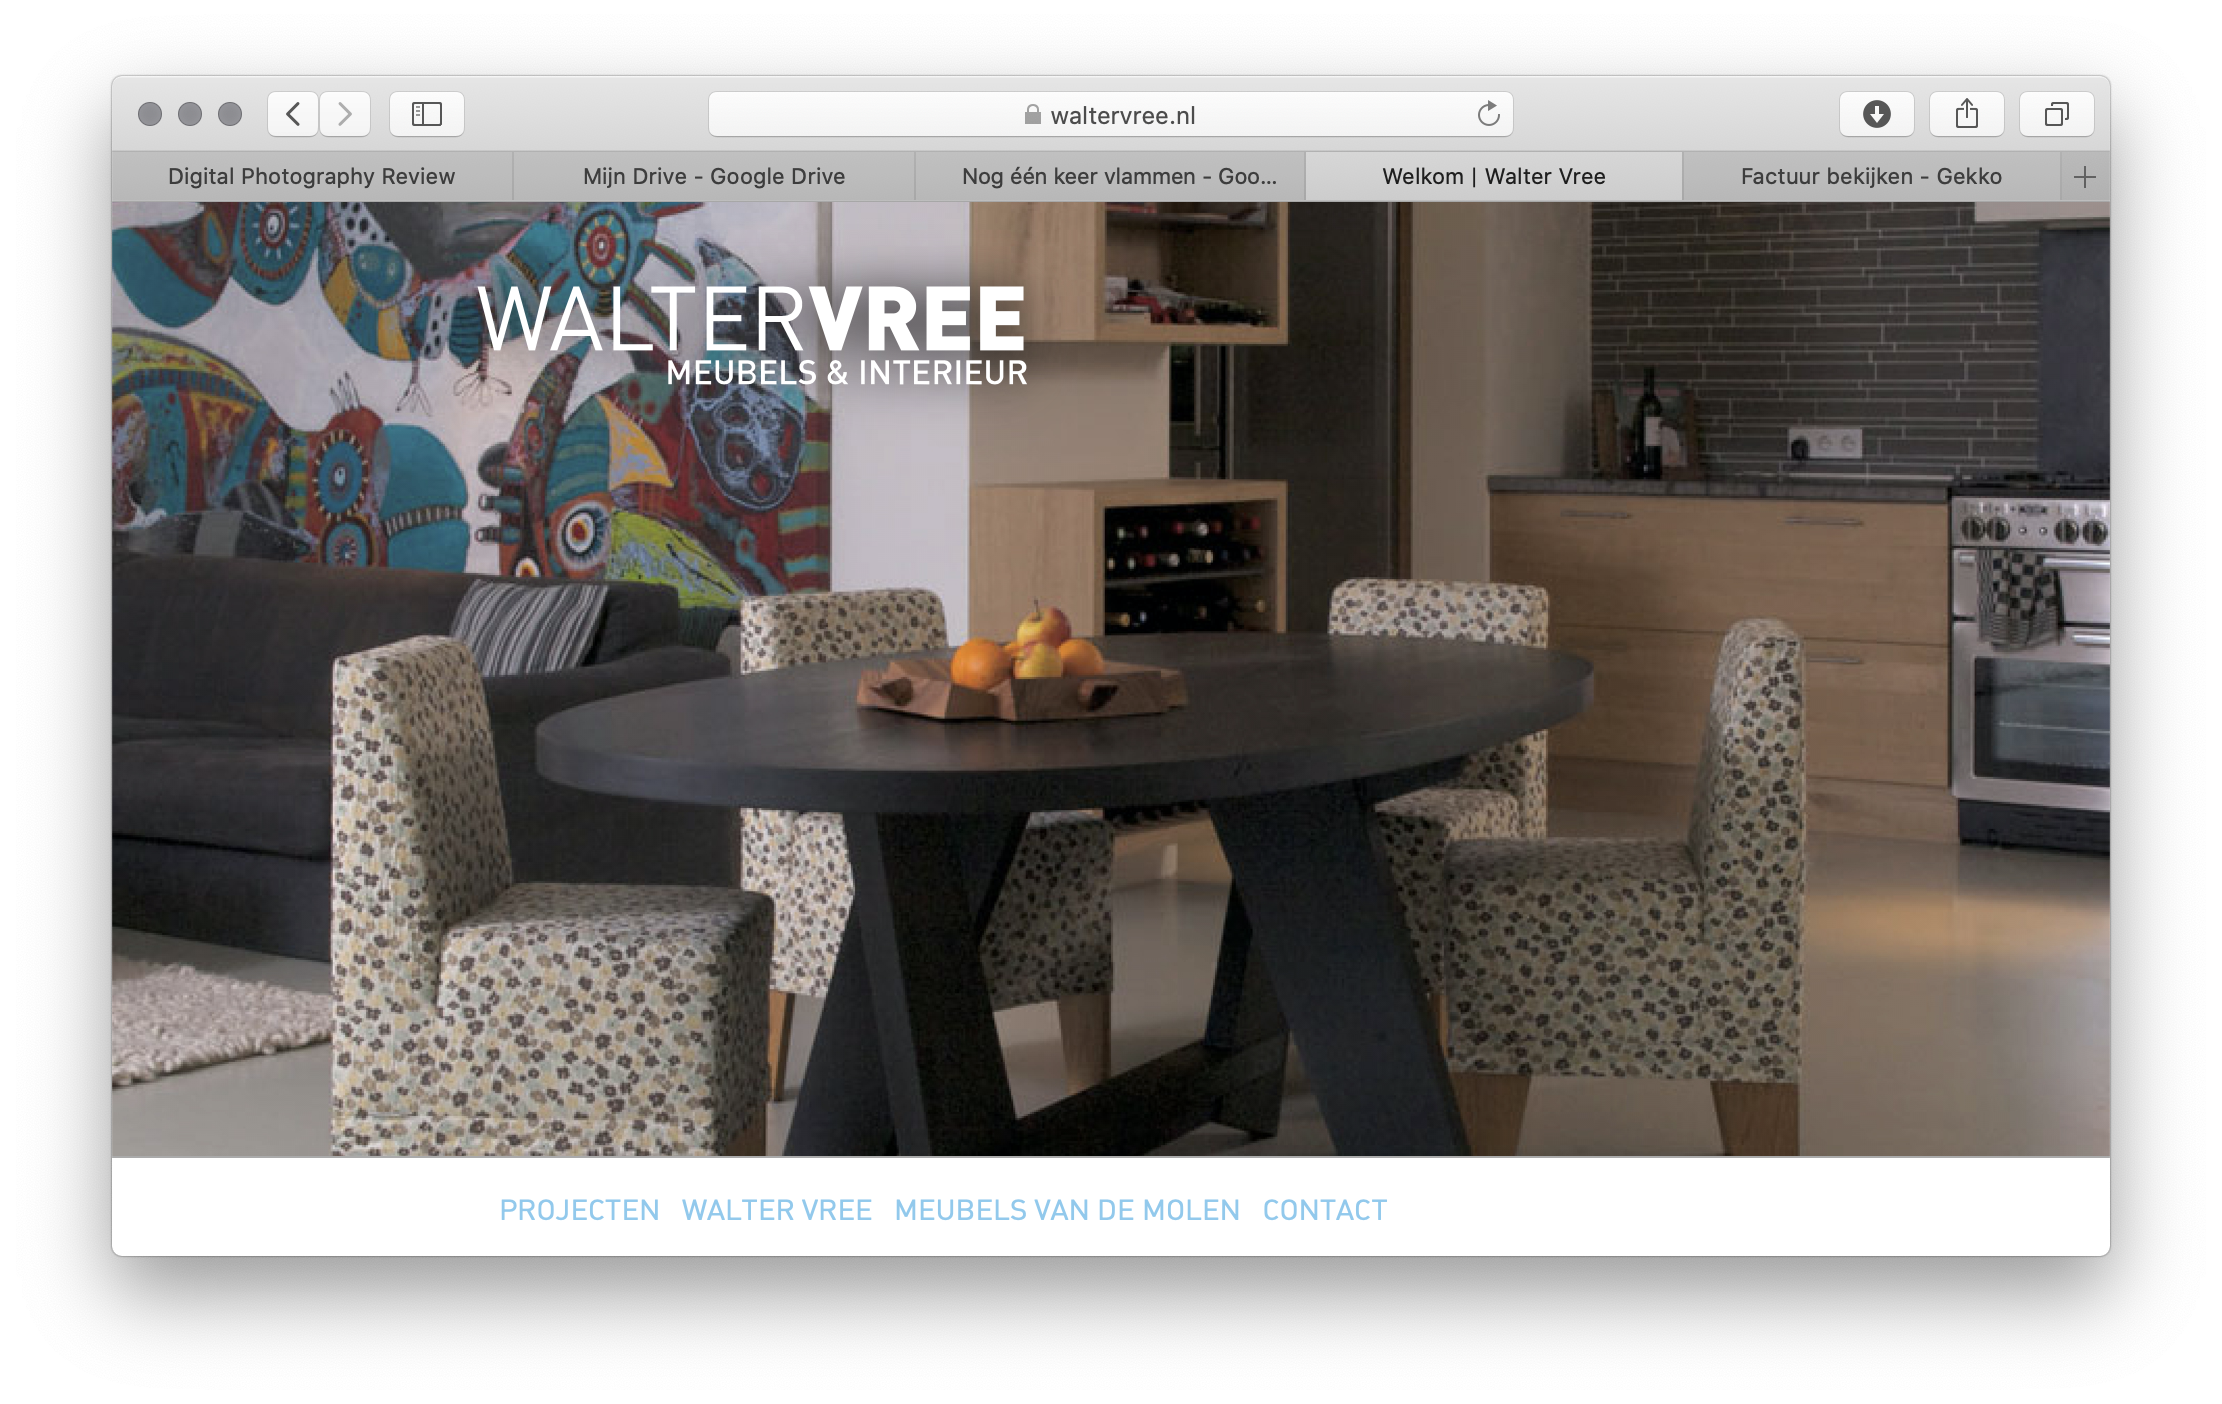 Walter Vree website